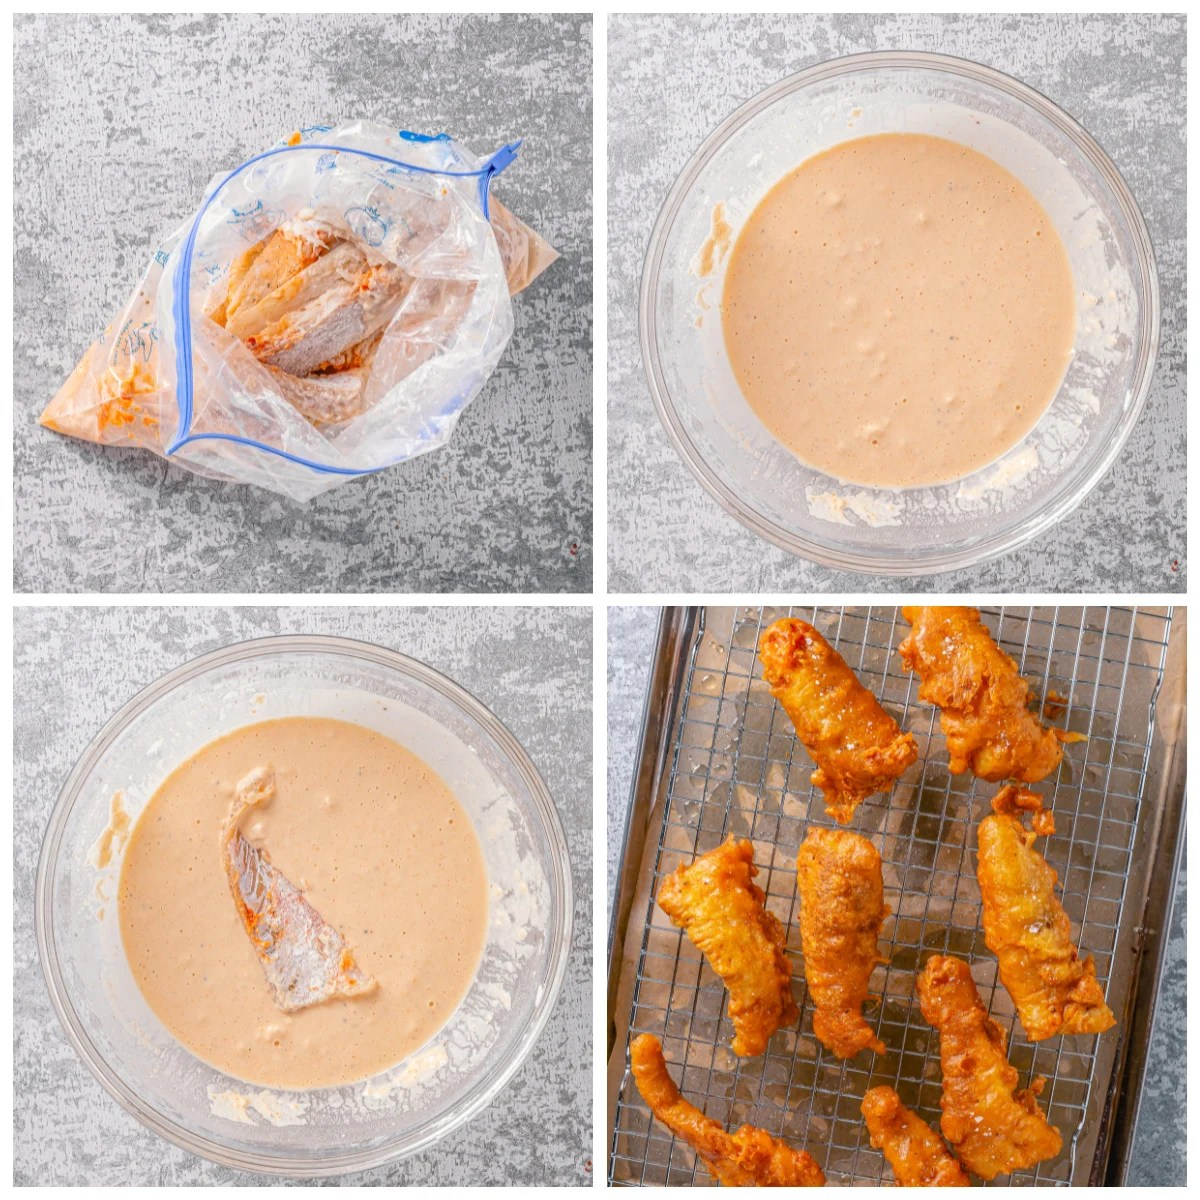 Step by step photos on how to make a Crunchy Battered Fish Recipe